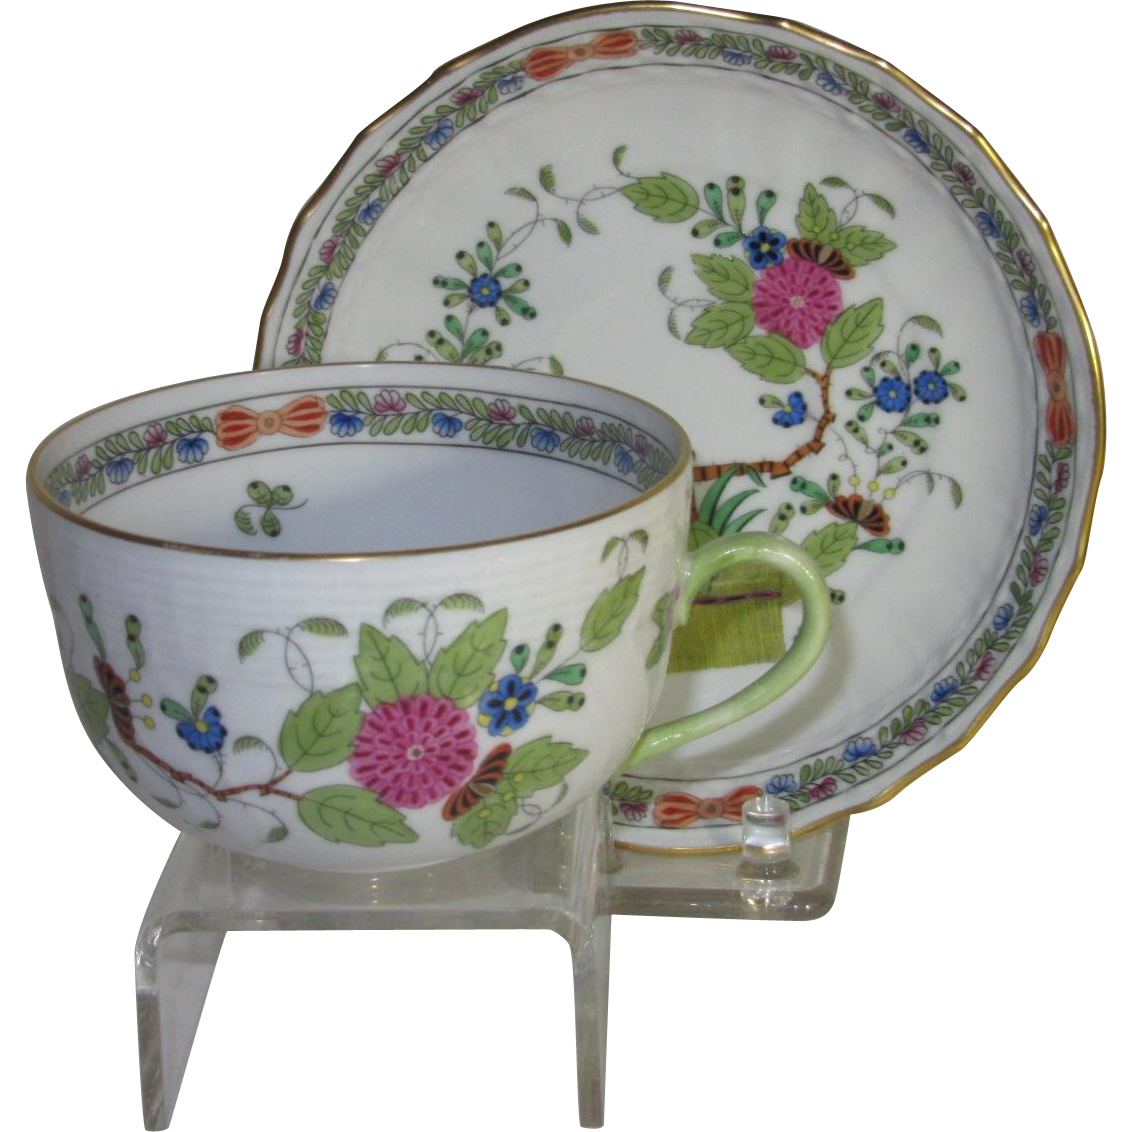 Herend Cup and Saucer, Hand Painted Fleurs des Indies Pattern